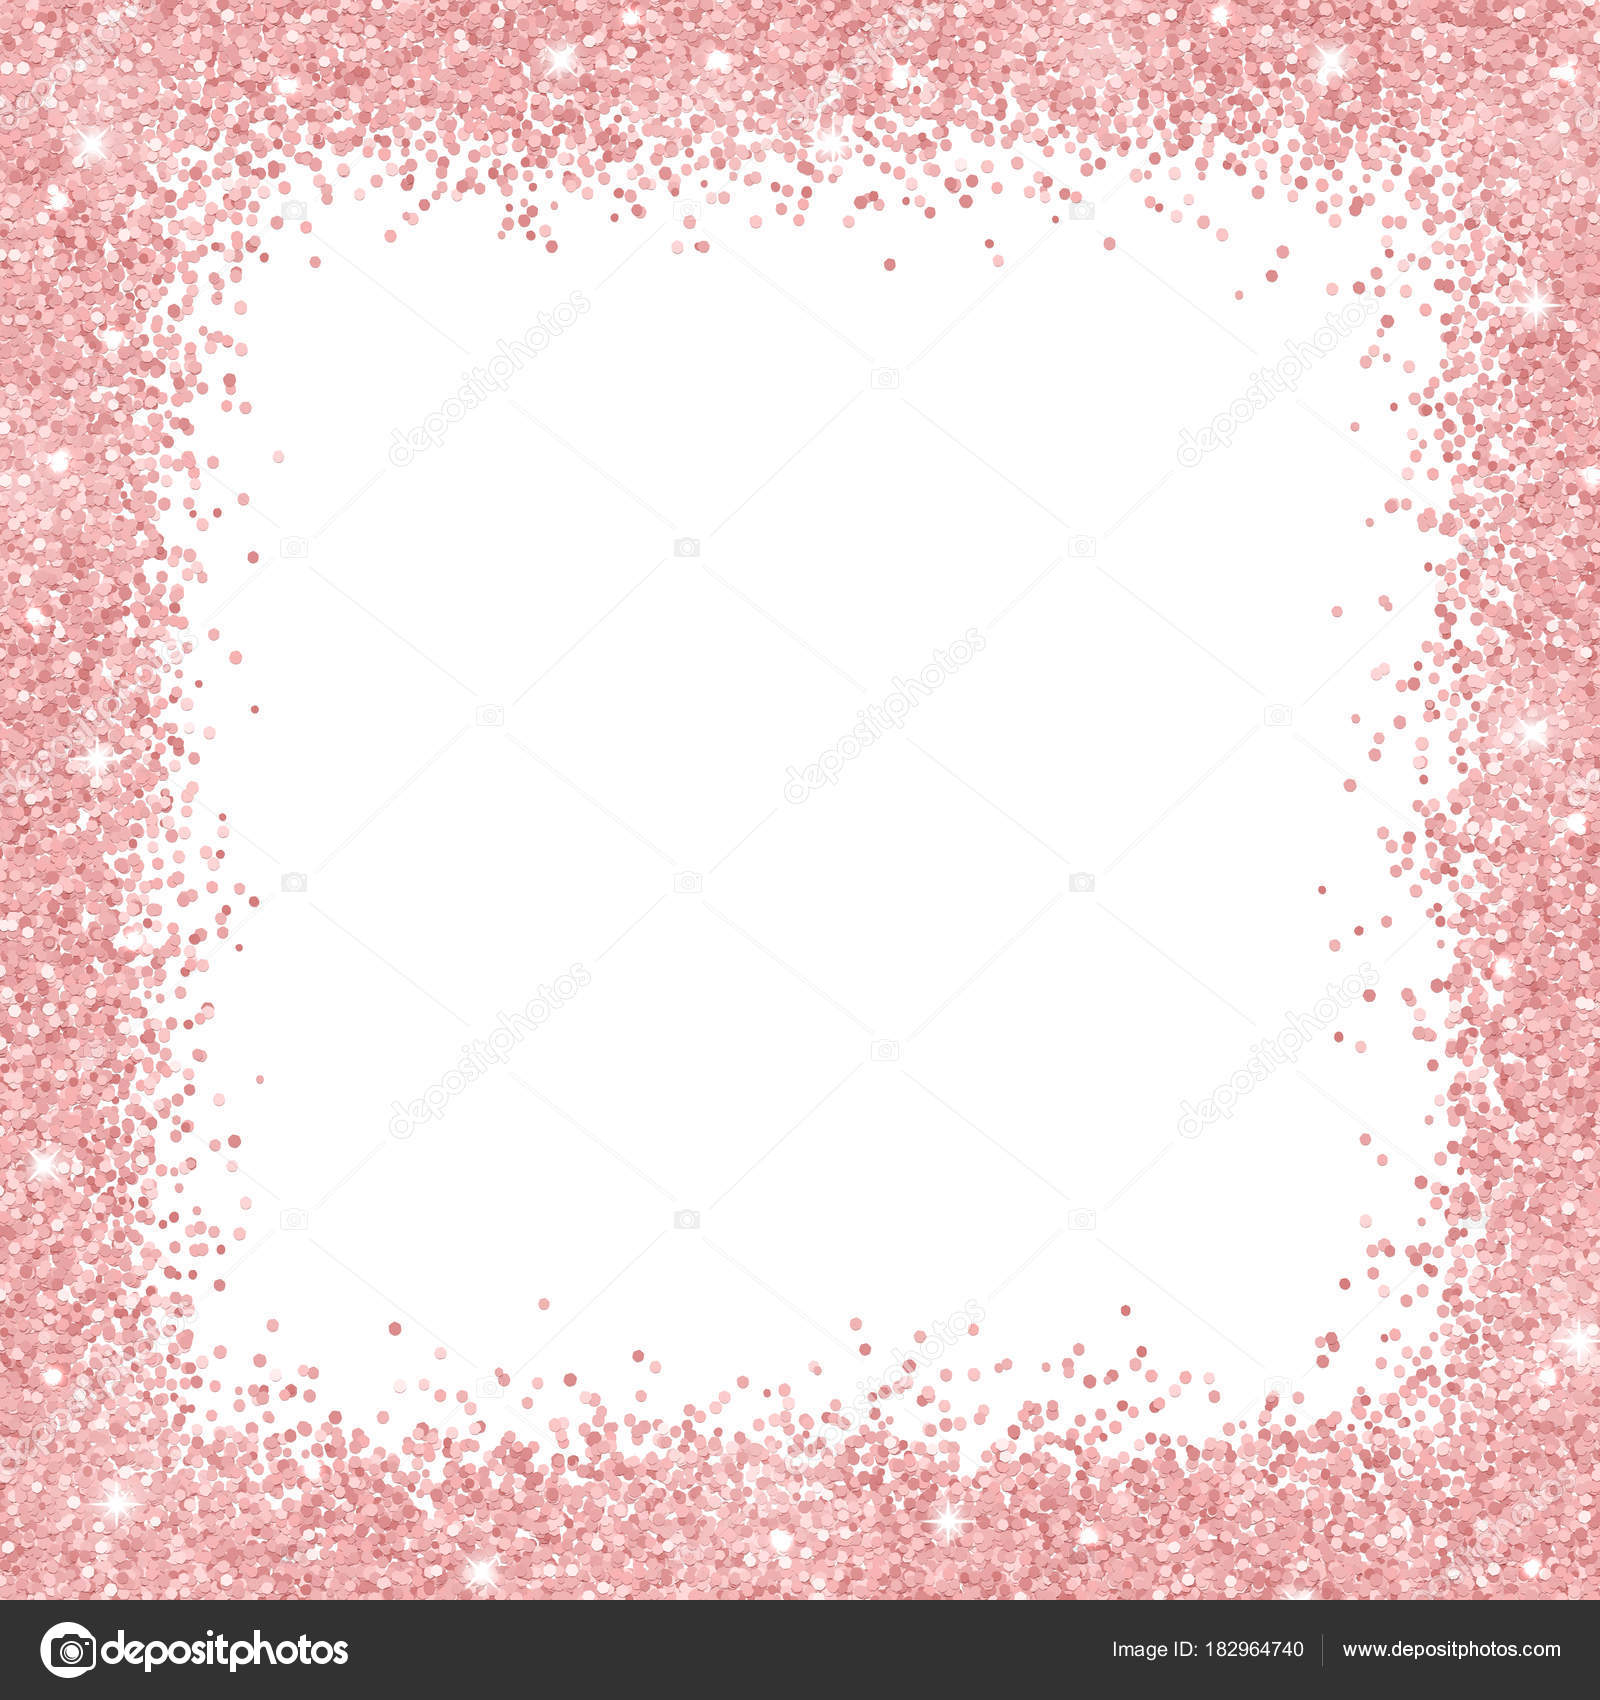 Border Frame With Rose Gold Glitter On White Background Vector Illustration By Lavaberezkagmail